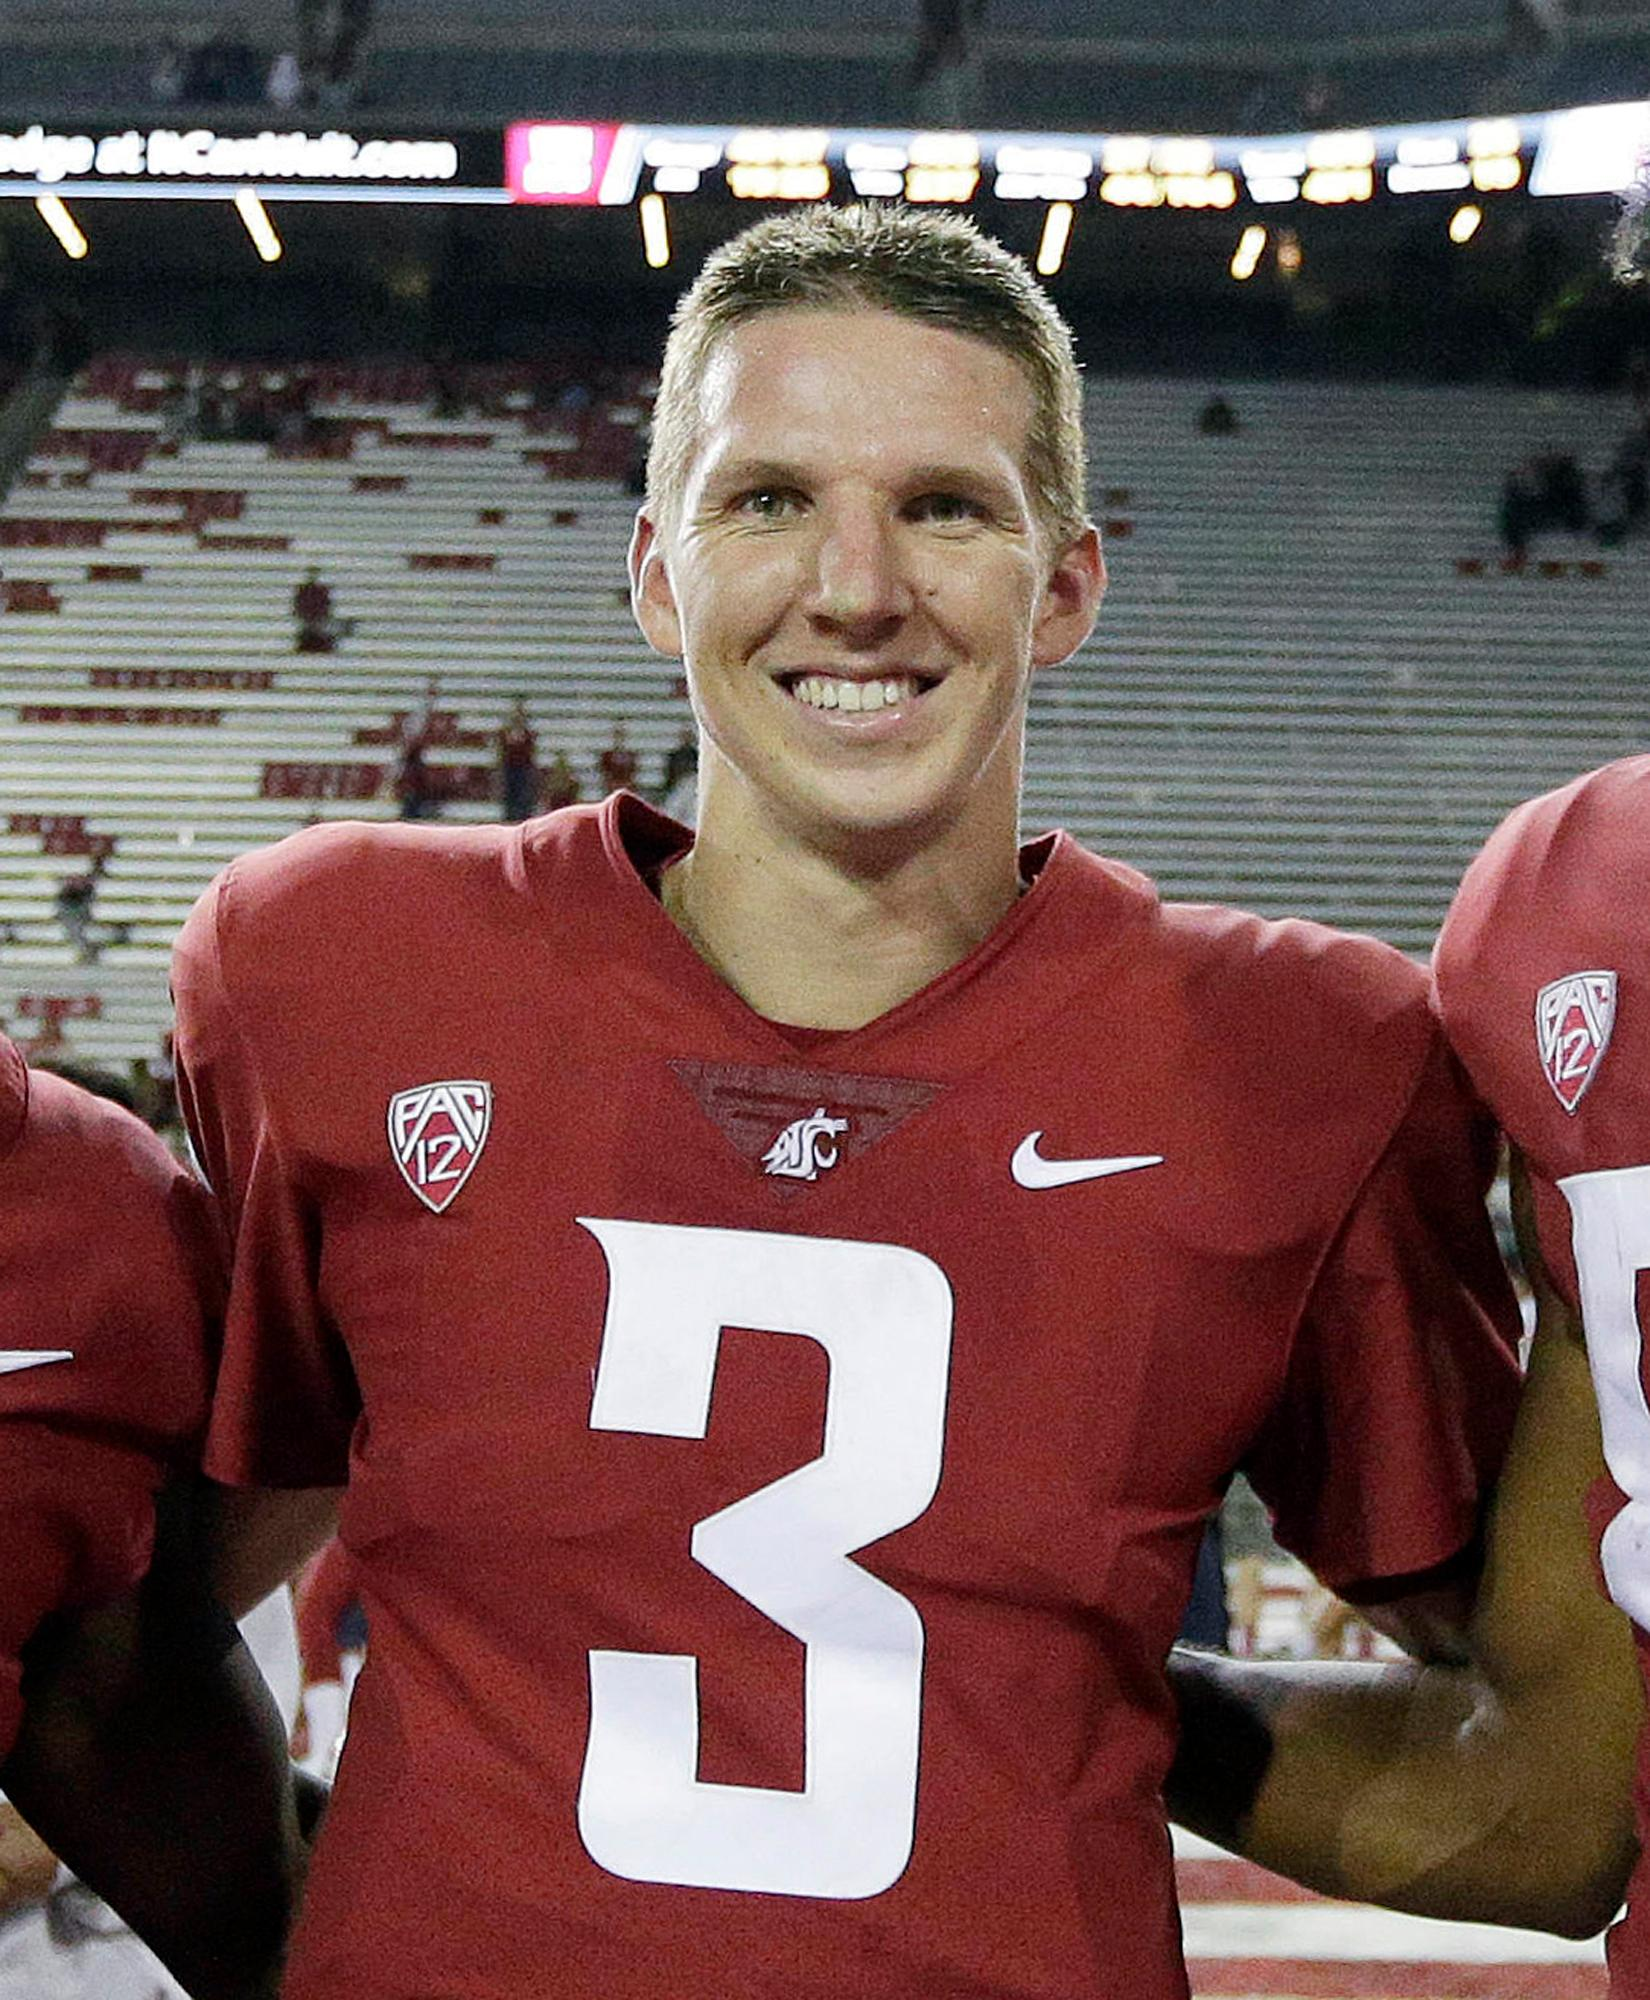 FILE - In this Sept. 9, 2017, file photo, Washington State quarterback Tyler Hilinski poses for a photo after an NCAA college football game against Boise State in Pullman, Wash. Hilinski has died from an apparent self-inflicted gunshot wound. The 21-year-old Hilinski was discovered in his apartment after he didn't show up for practice Tuesday, Jan. 16, 2018. (AP Photo/Young Kwak, File)